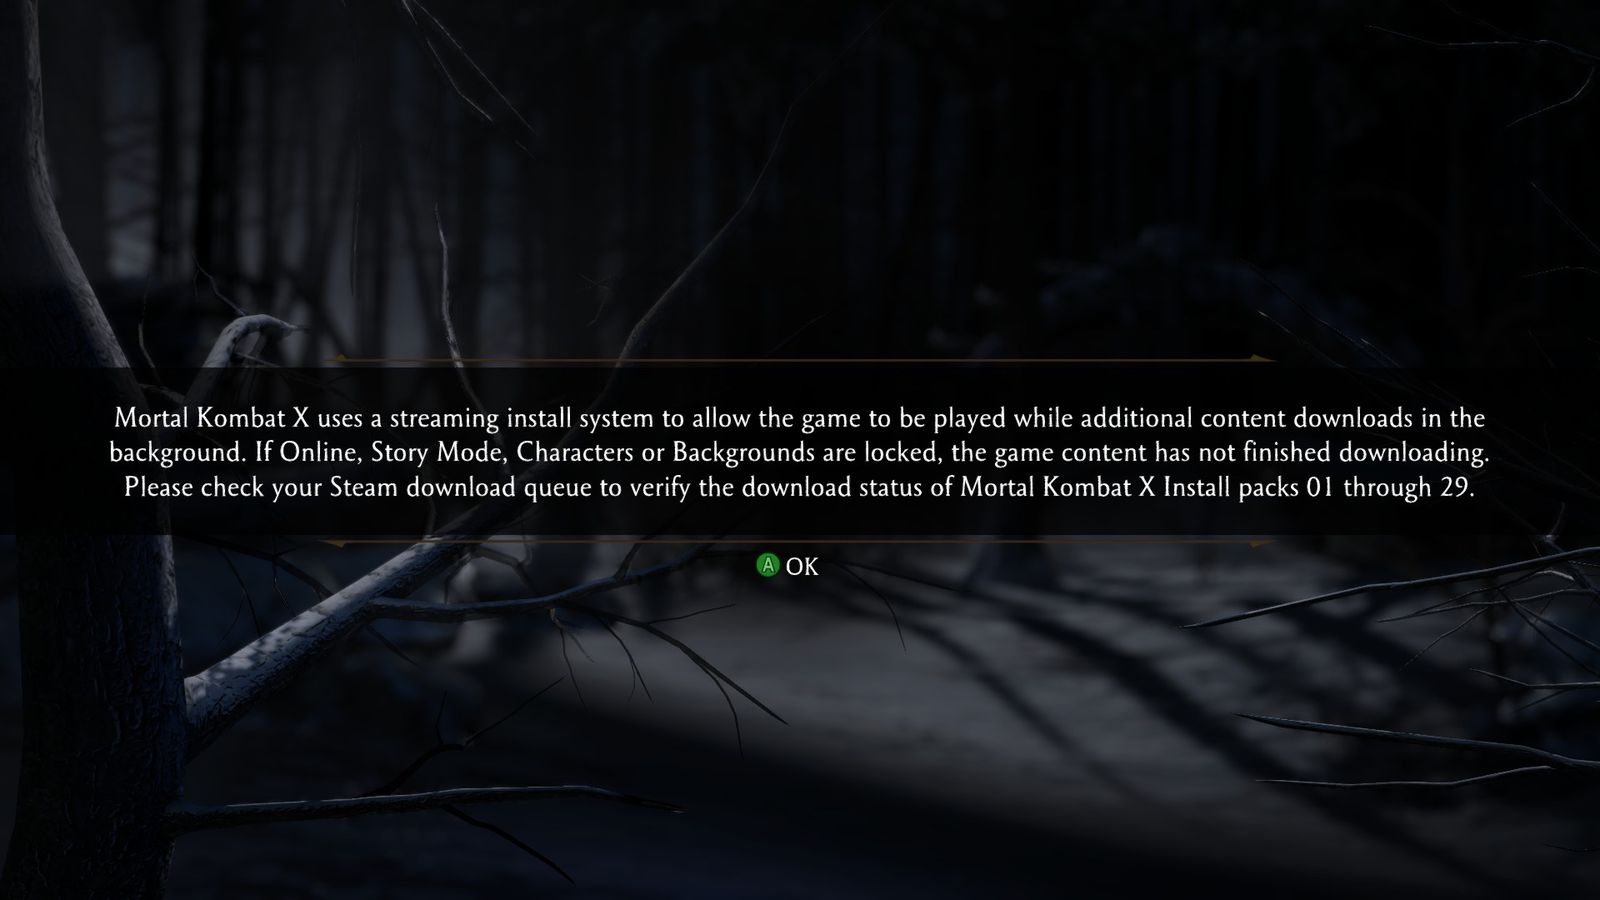 Mortal Kombat X uses a new Steam 'streaming install'     and messes